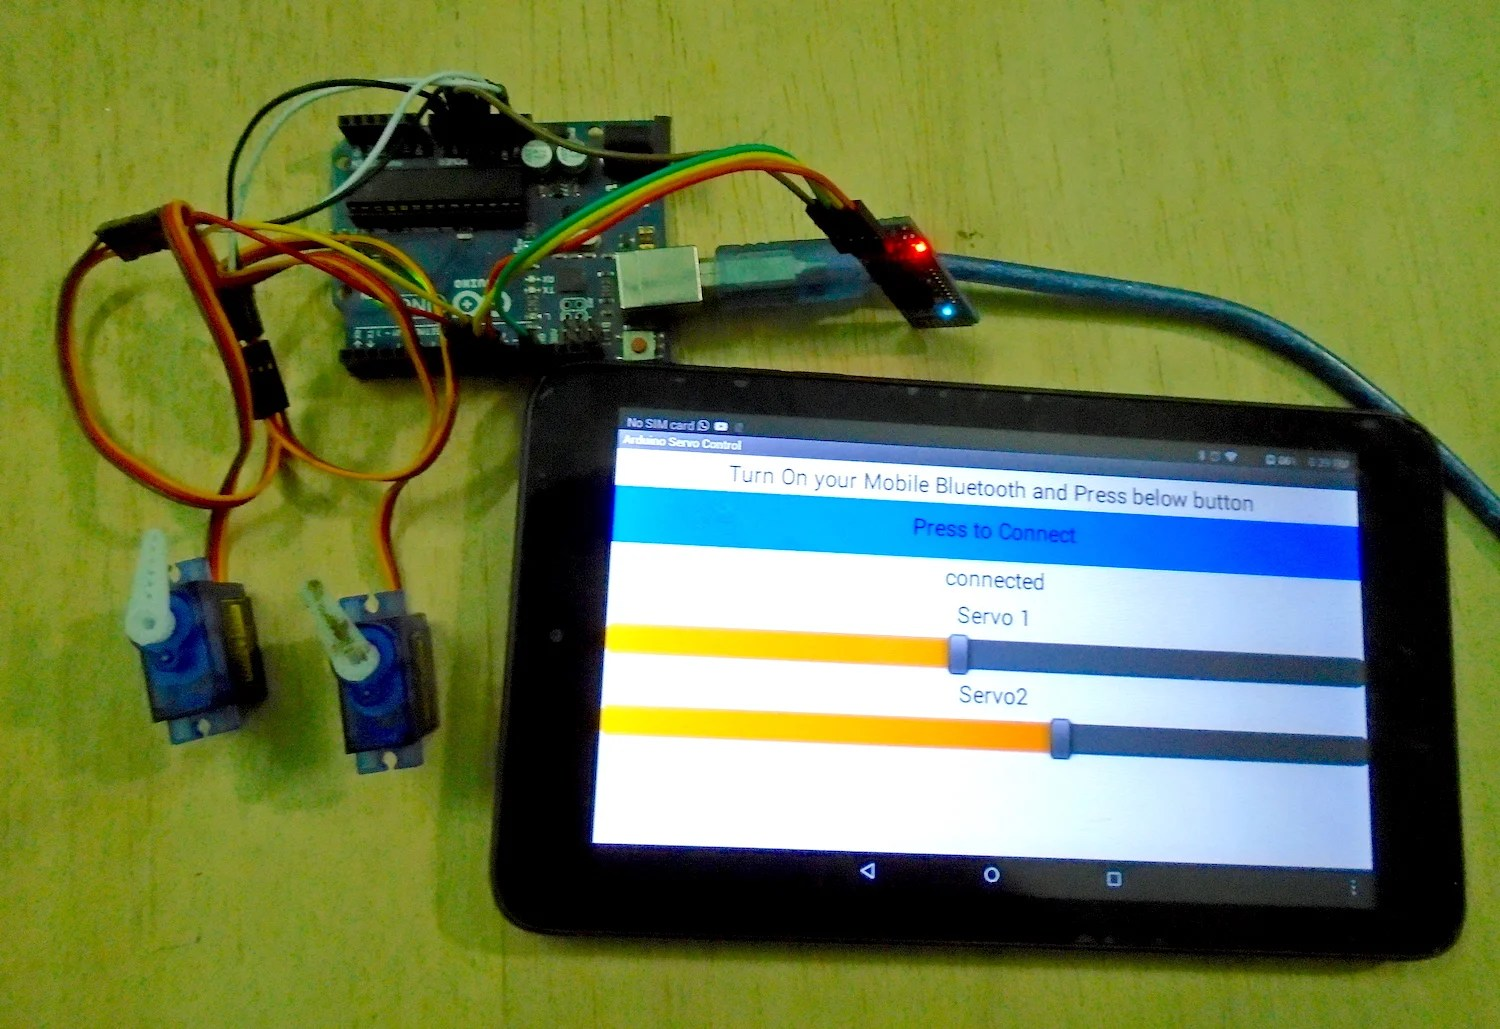 hight resolution of how to control servo motors from a mobile device with an arduino uno and an android app arduino maker pro